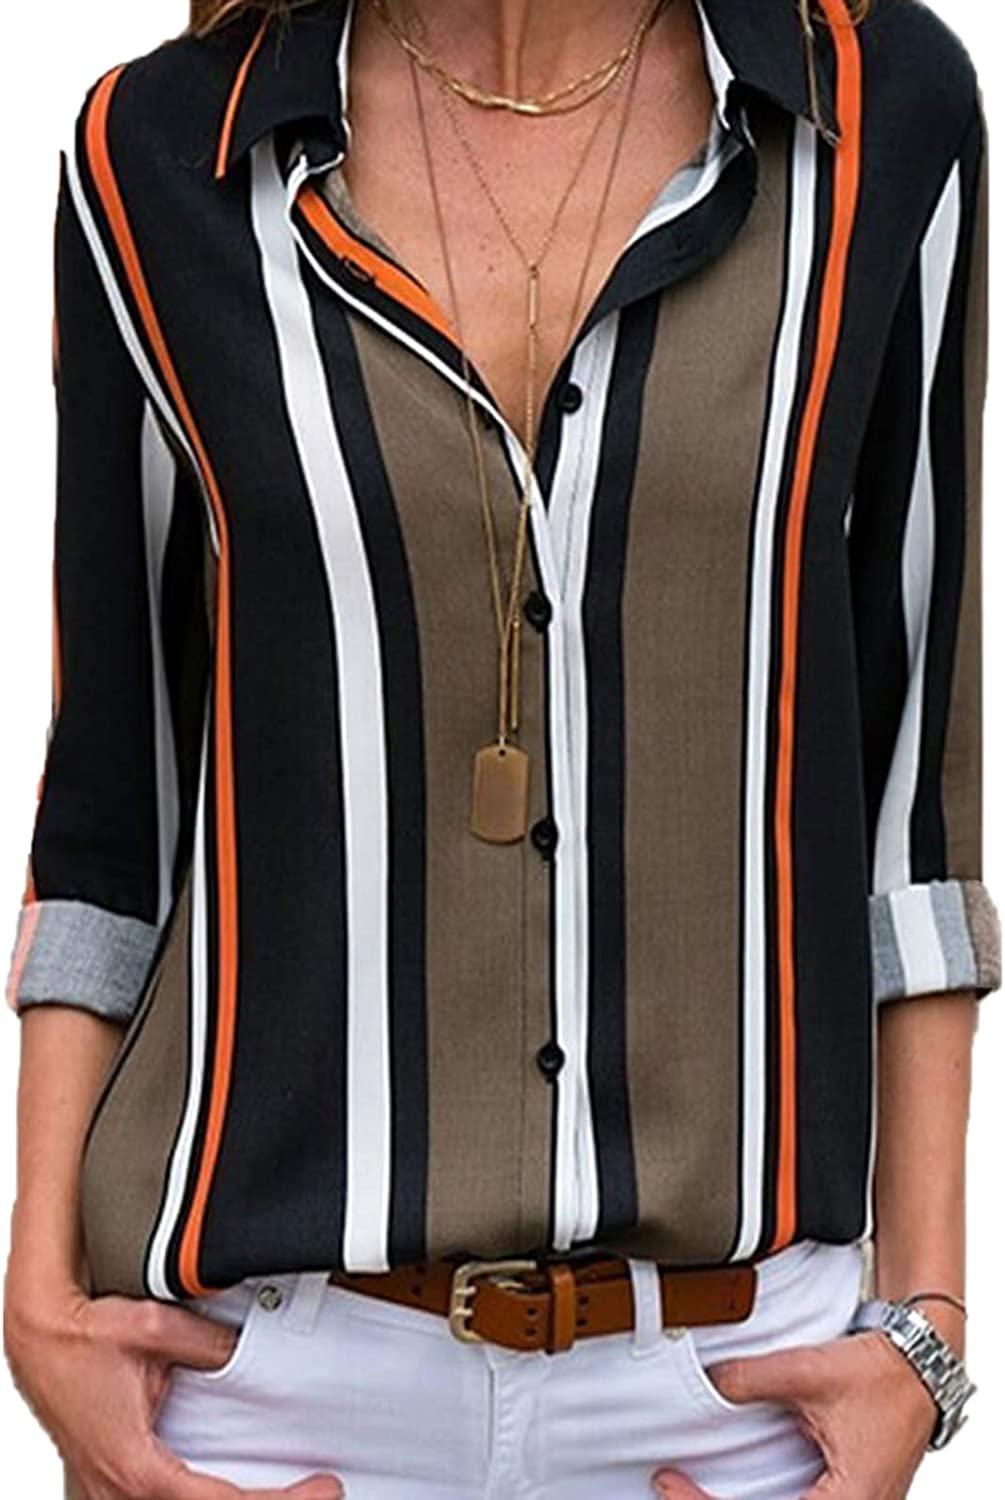 Lannychic Women's Stripes Button Down Shirts Roll-up Sleeve Tops V Neck Casual Work Blouses Tunics